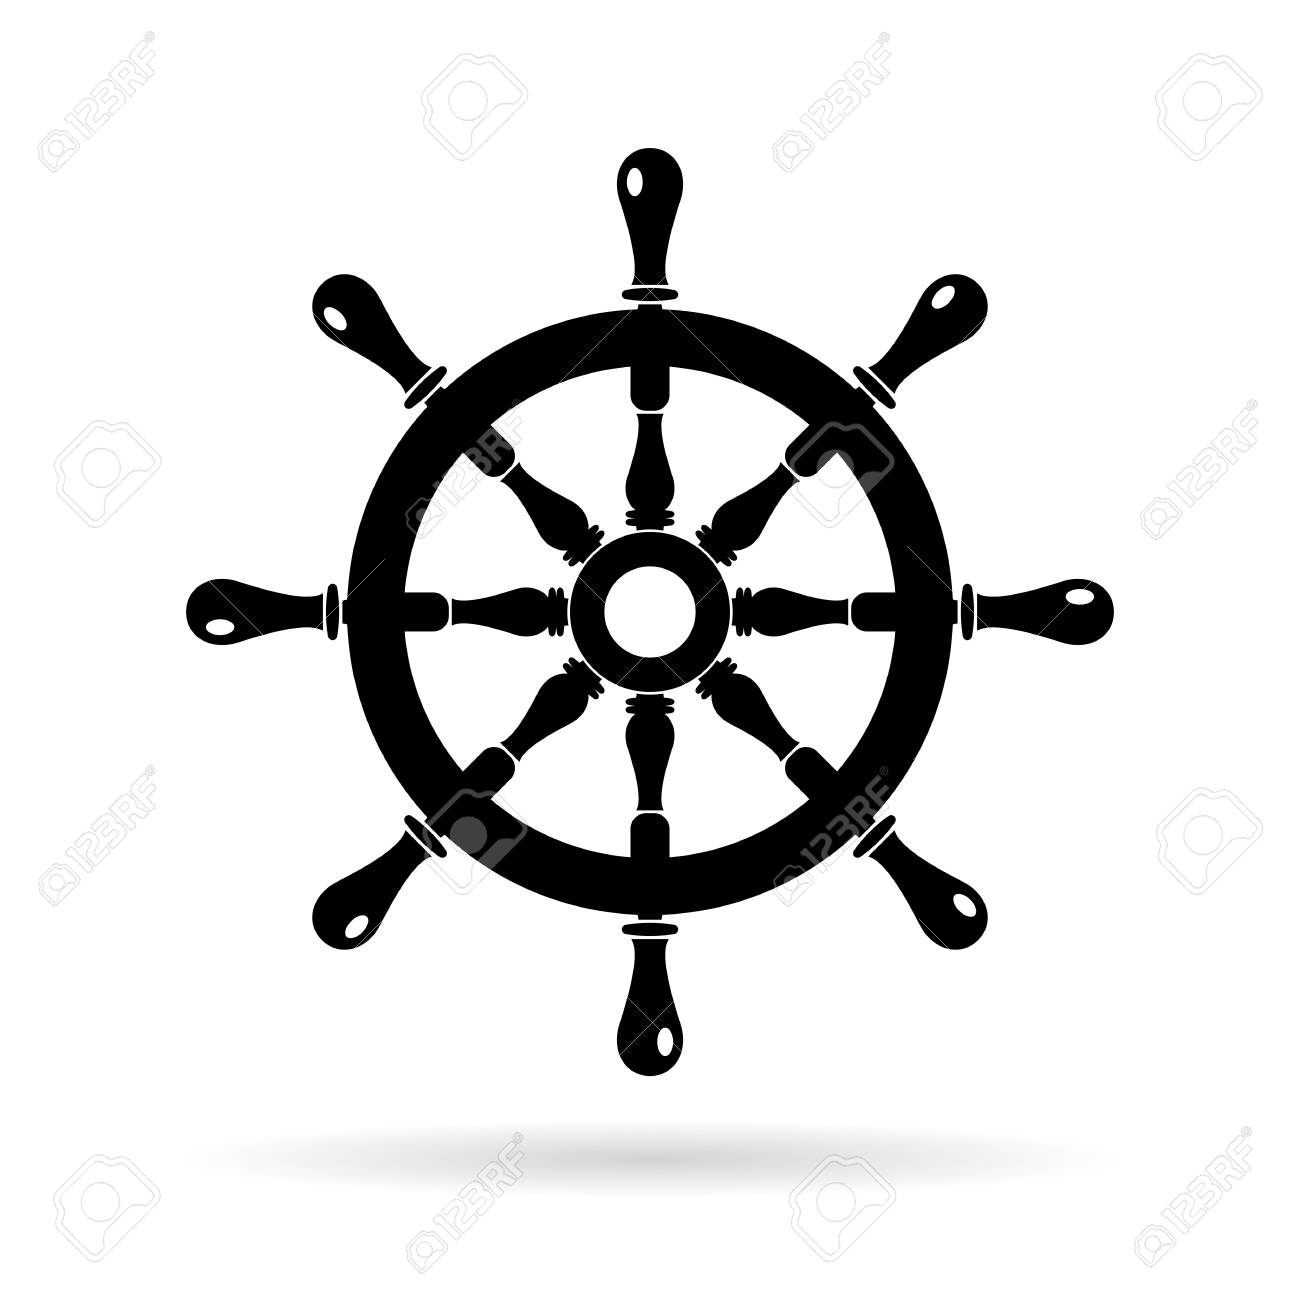 boat steering wheel vector icon royalty free cliparts vectors and stock illustration image 67623668 boat steering wheel vector icon